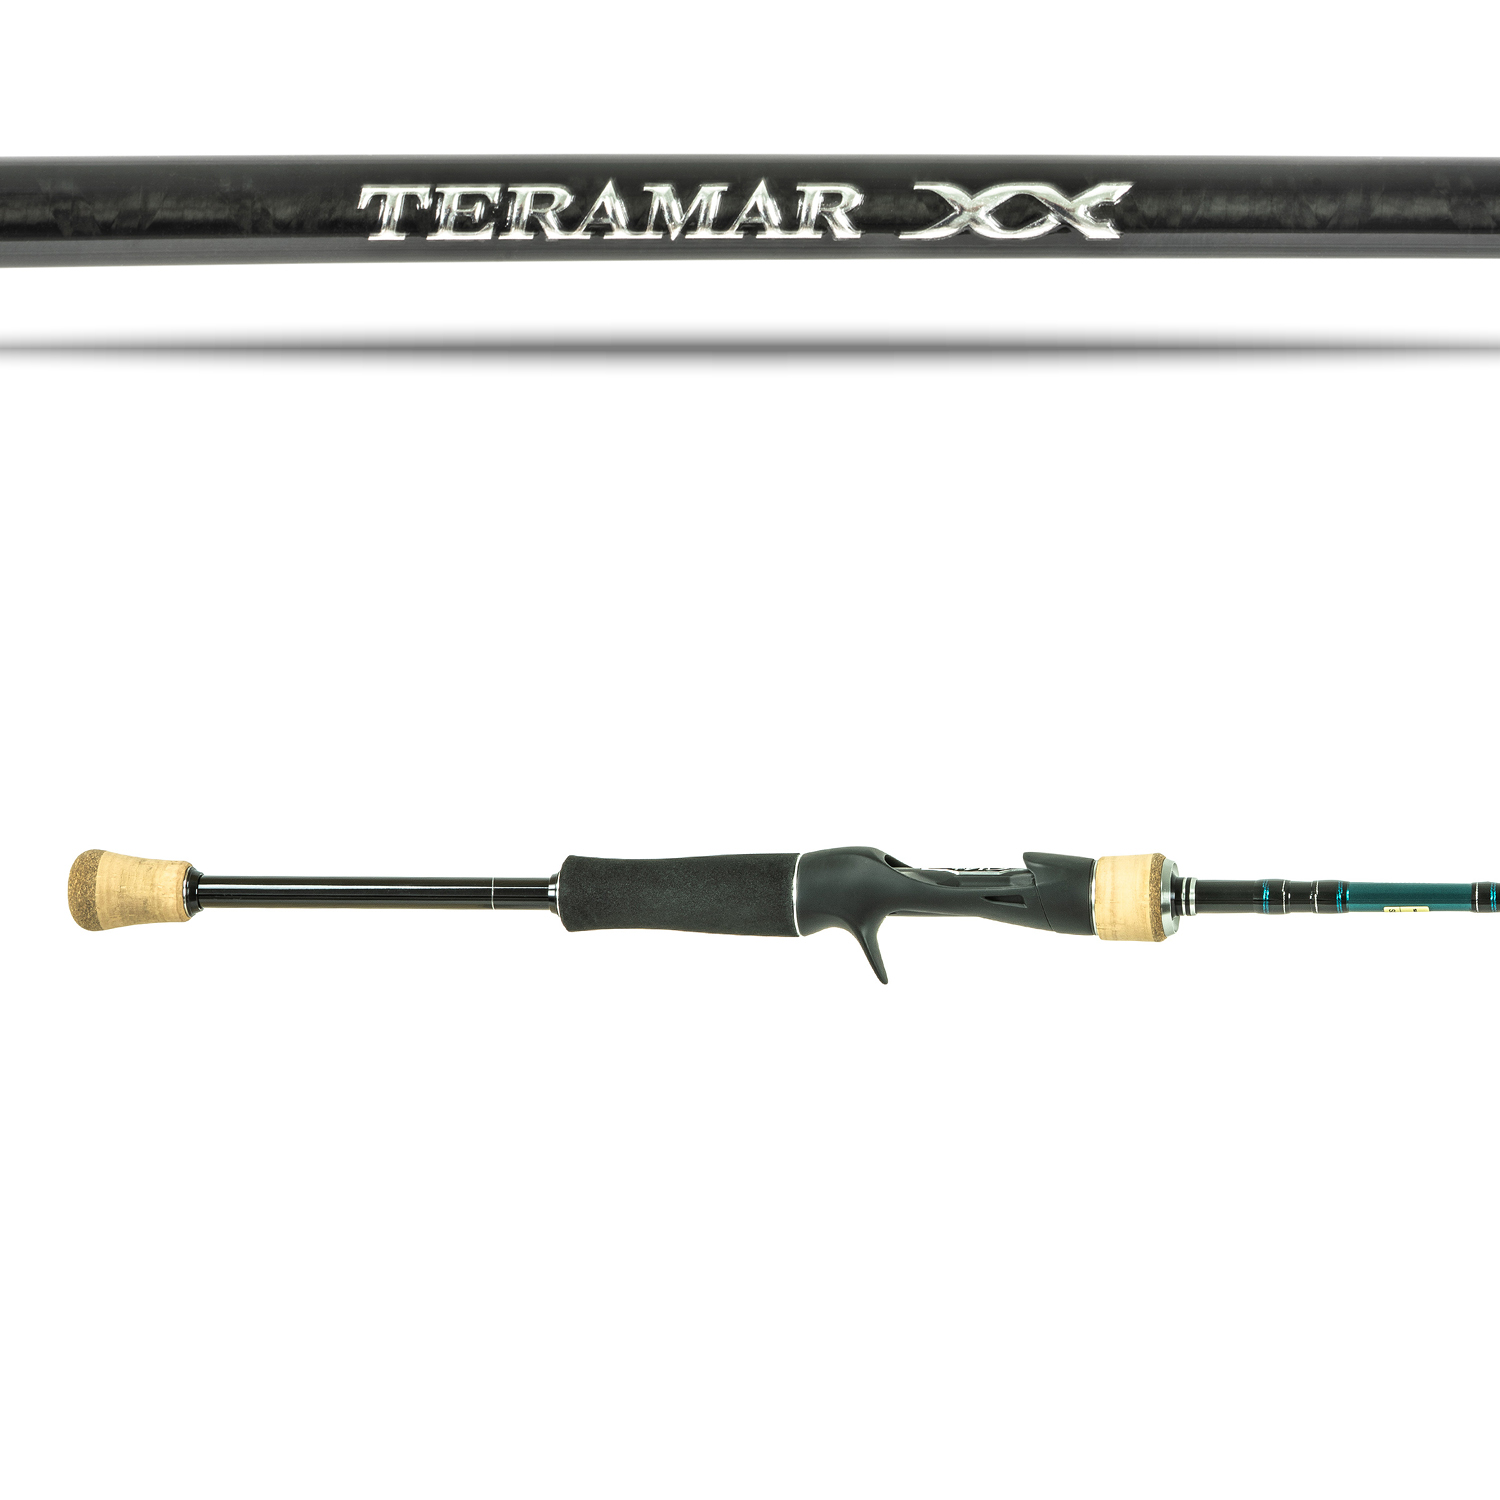 TERAMAR-XX-SW-CASTING-A-primary_01_detail